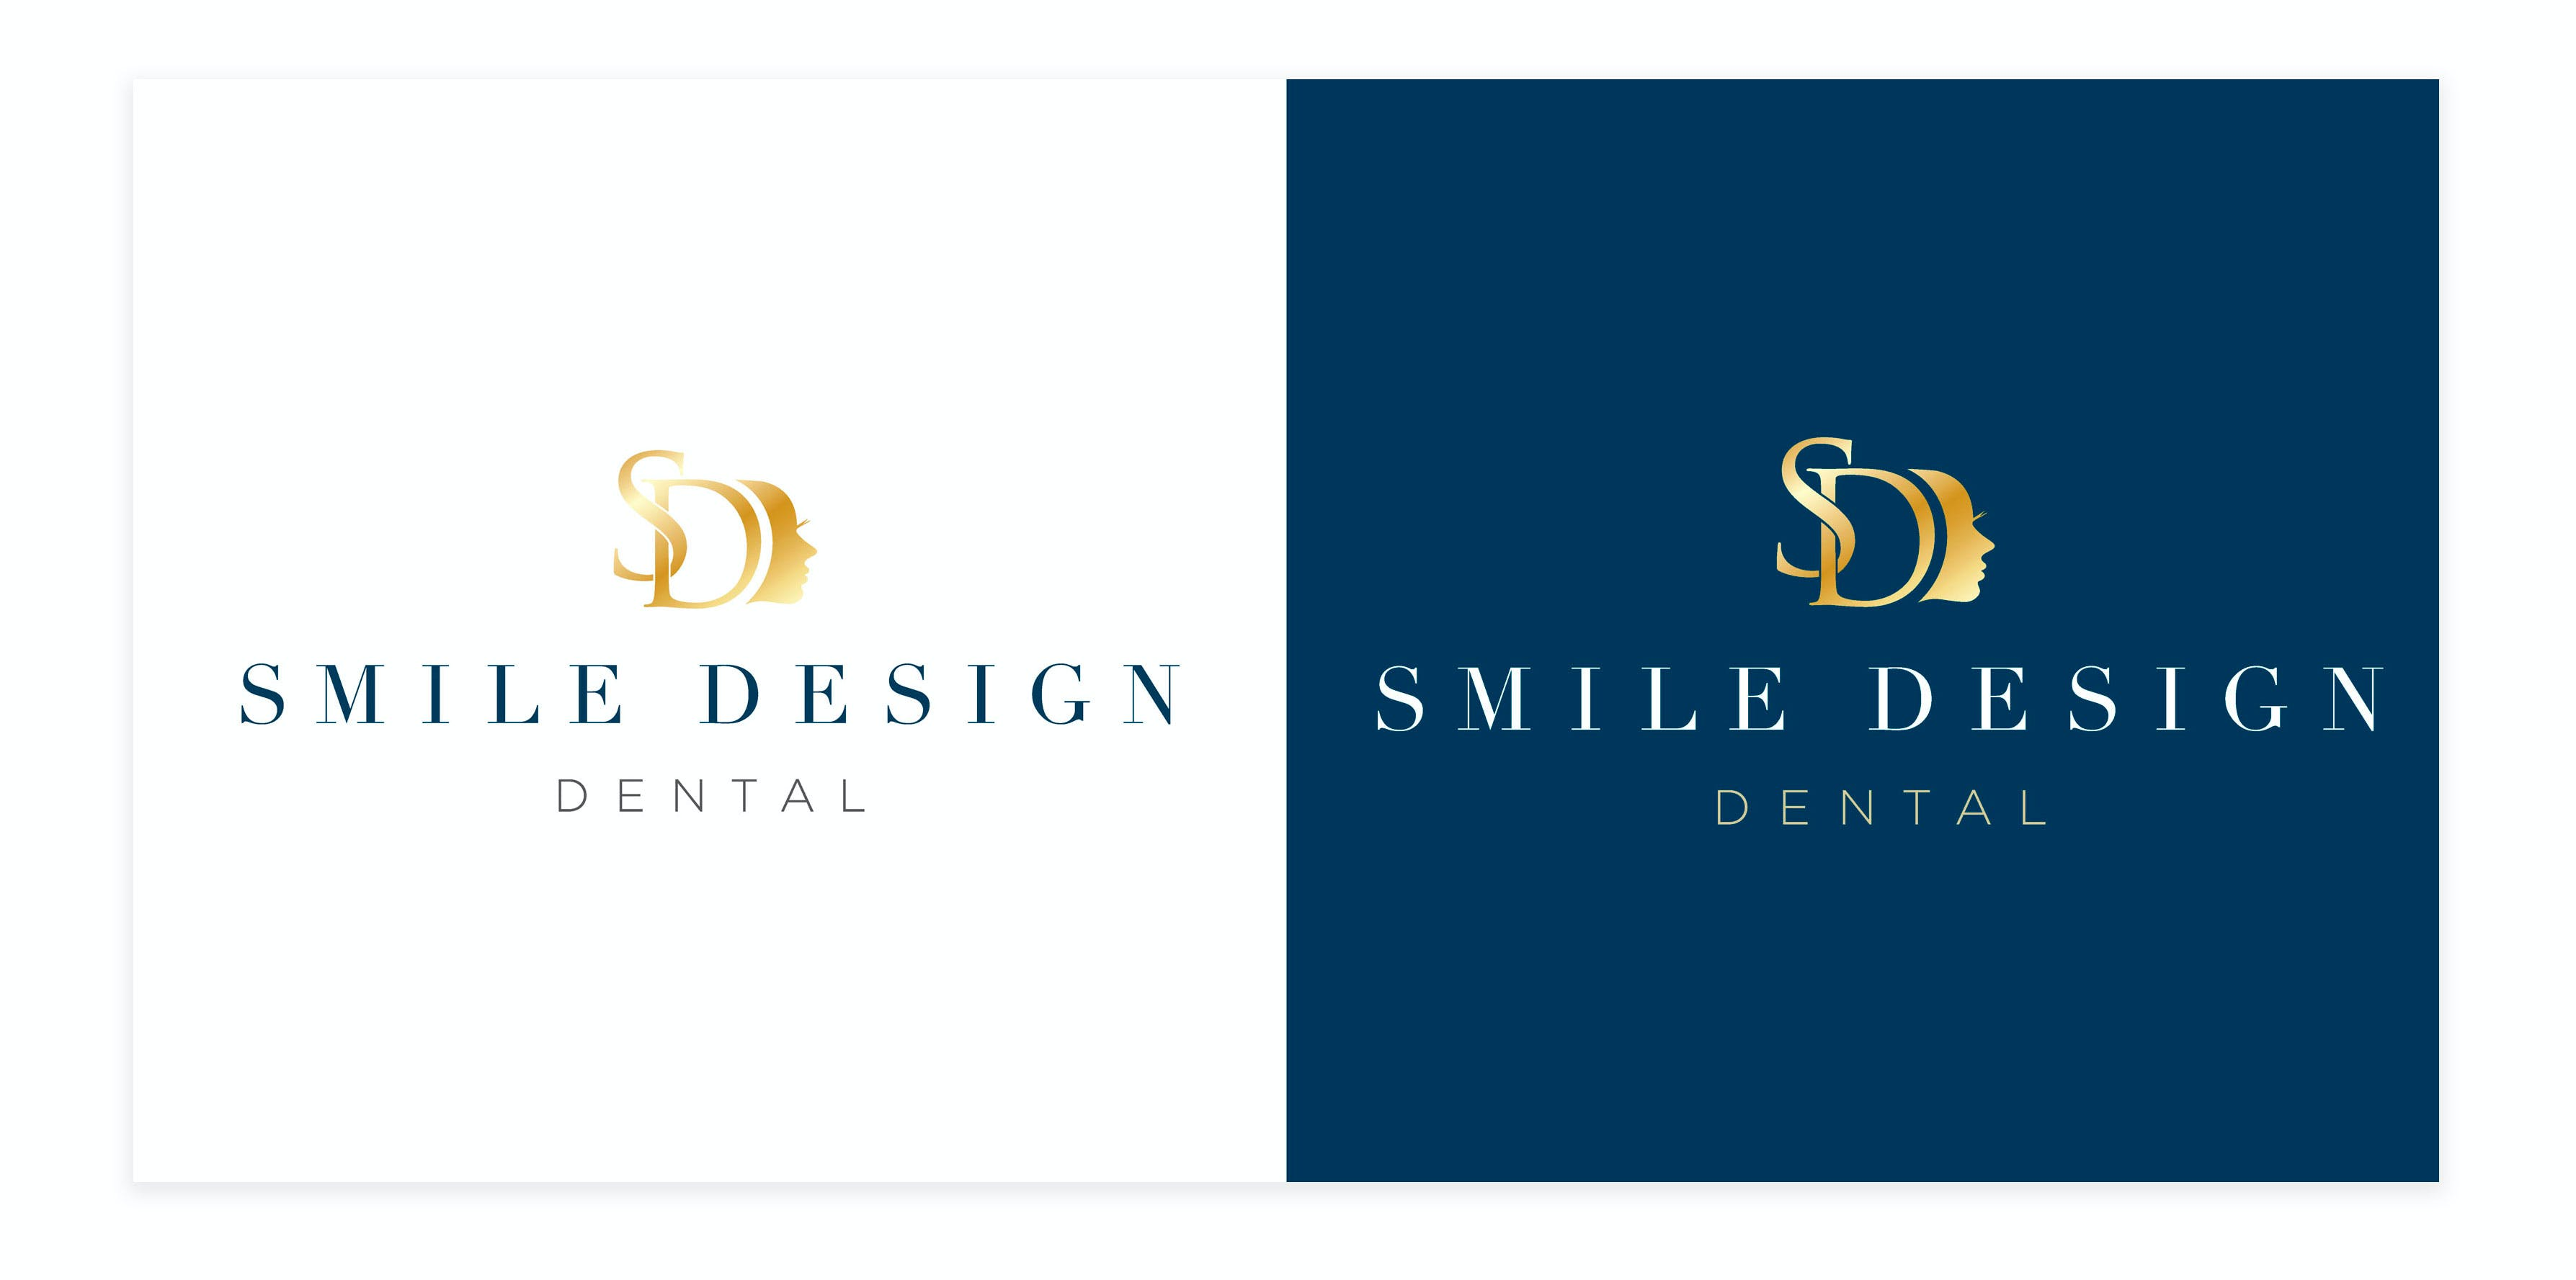 Smile Design Dental case study